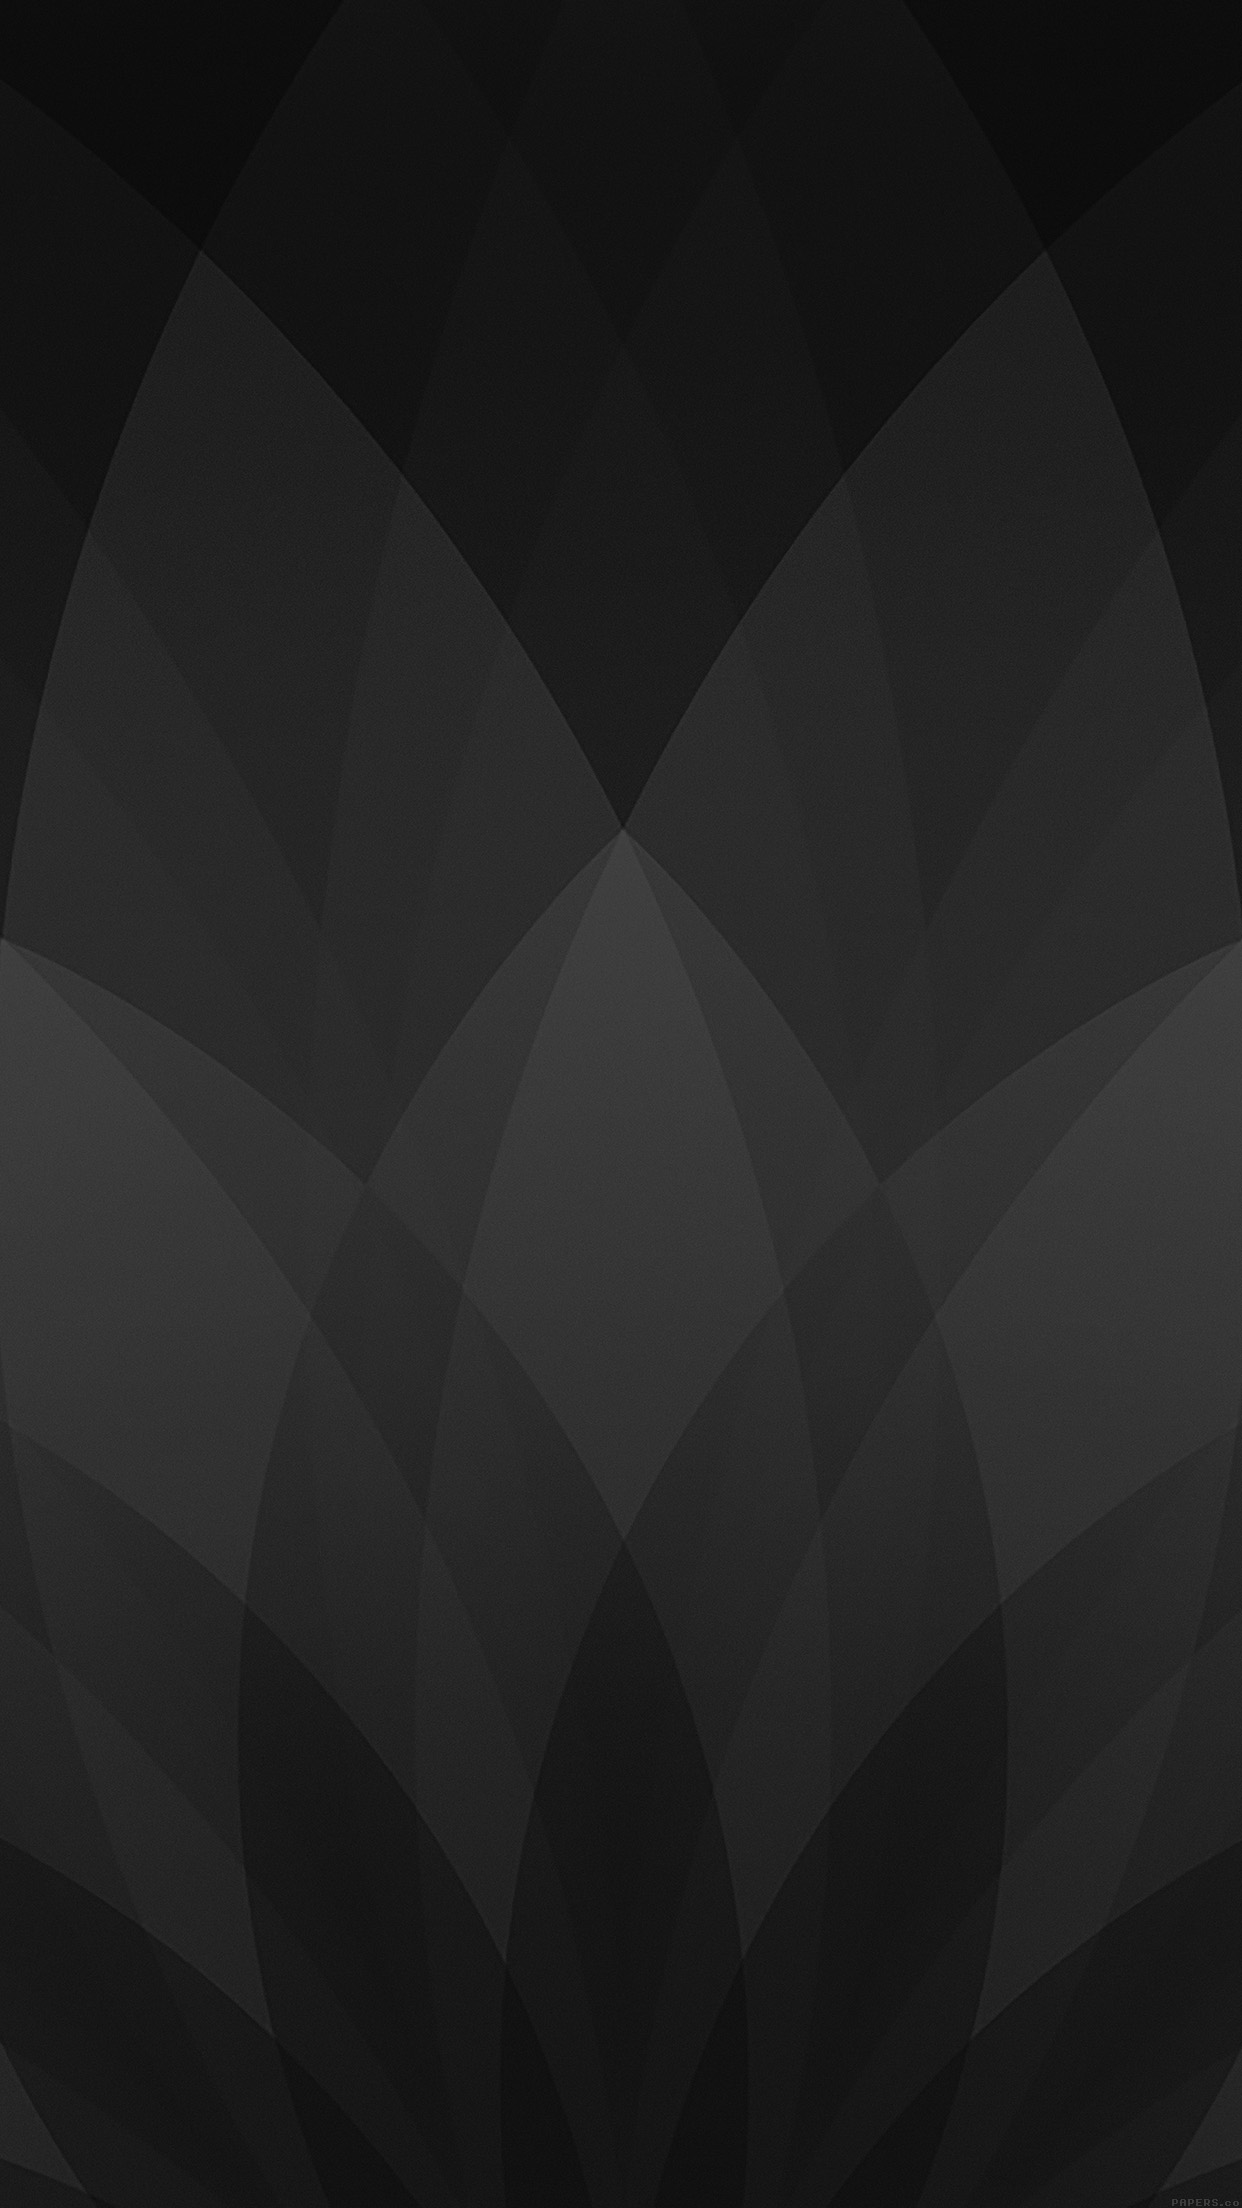 march-apple-event-dark-black-pattern-34-iphone-7-plus-wallpaper